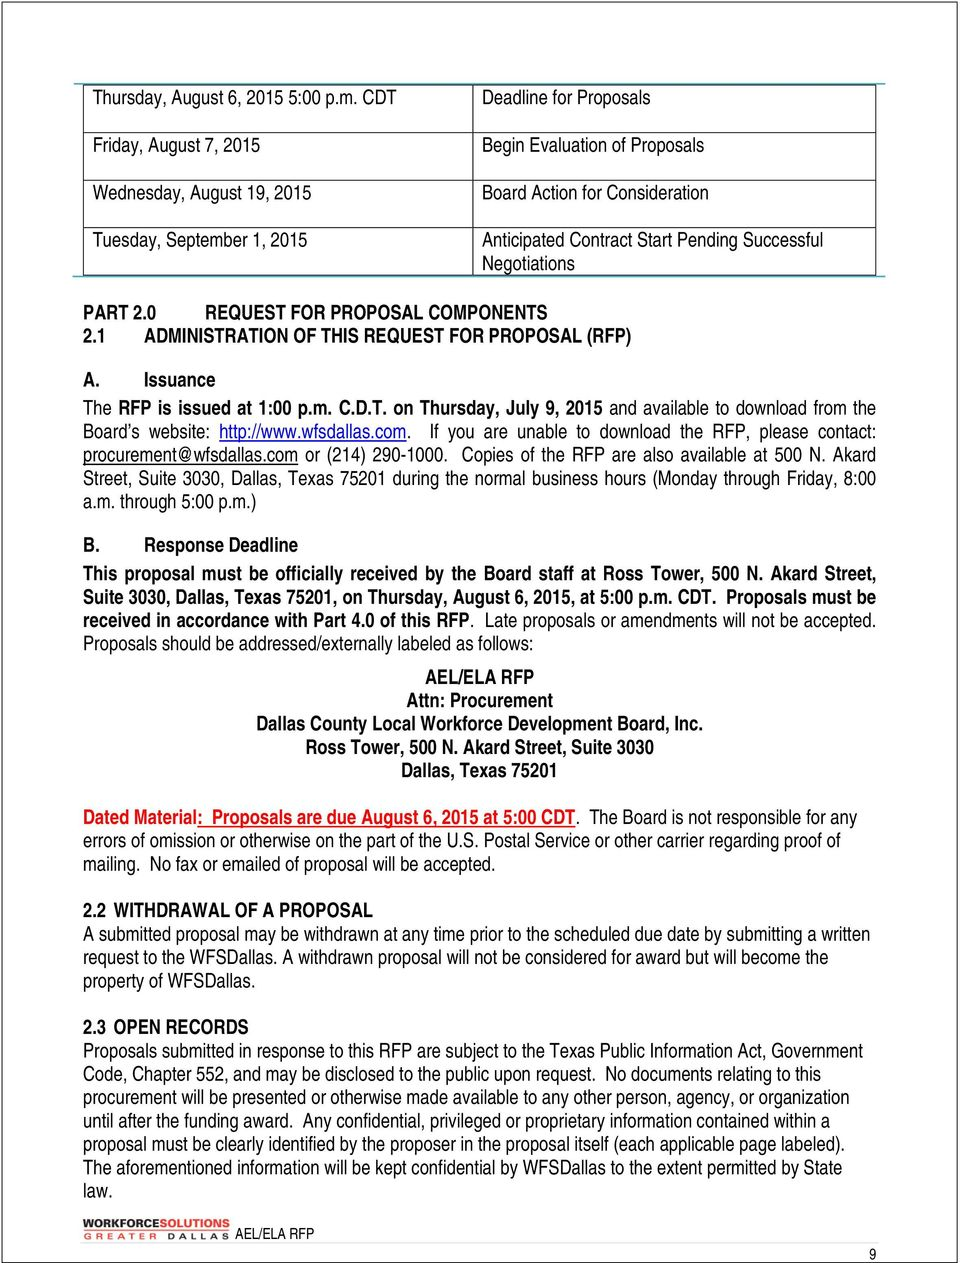 Successful Negotiations PART 2.0 REQUEST FOR PROPOSAL COMPONENTS 2.1 ADMINISTRATION OF THIS REQUEST FOR PROPOSAL (RFP) A. Issuance The RFP is issued at 1:00 p.m. C.D.T. on Thursday, July 9, 2015 and available to download from the Board s website: http://www.